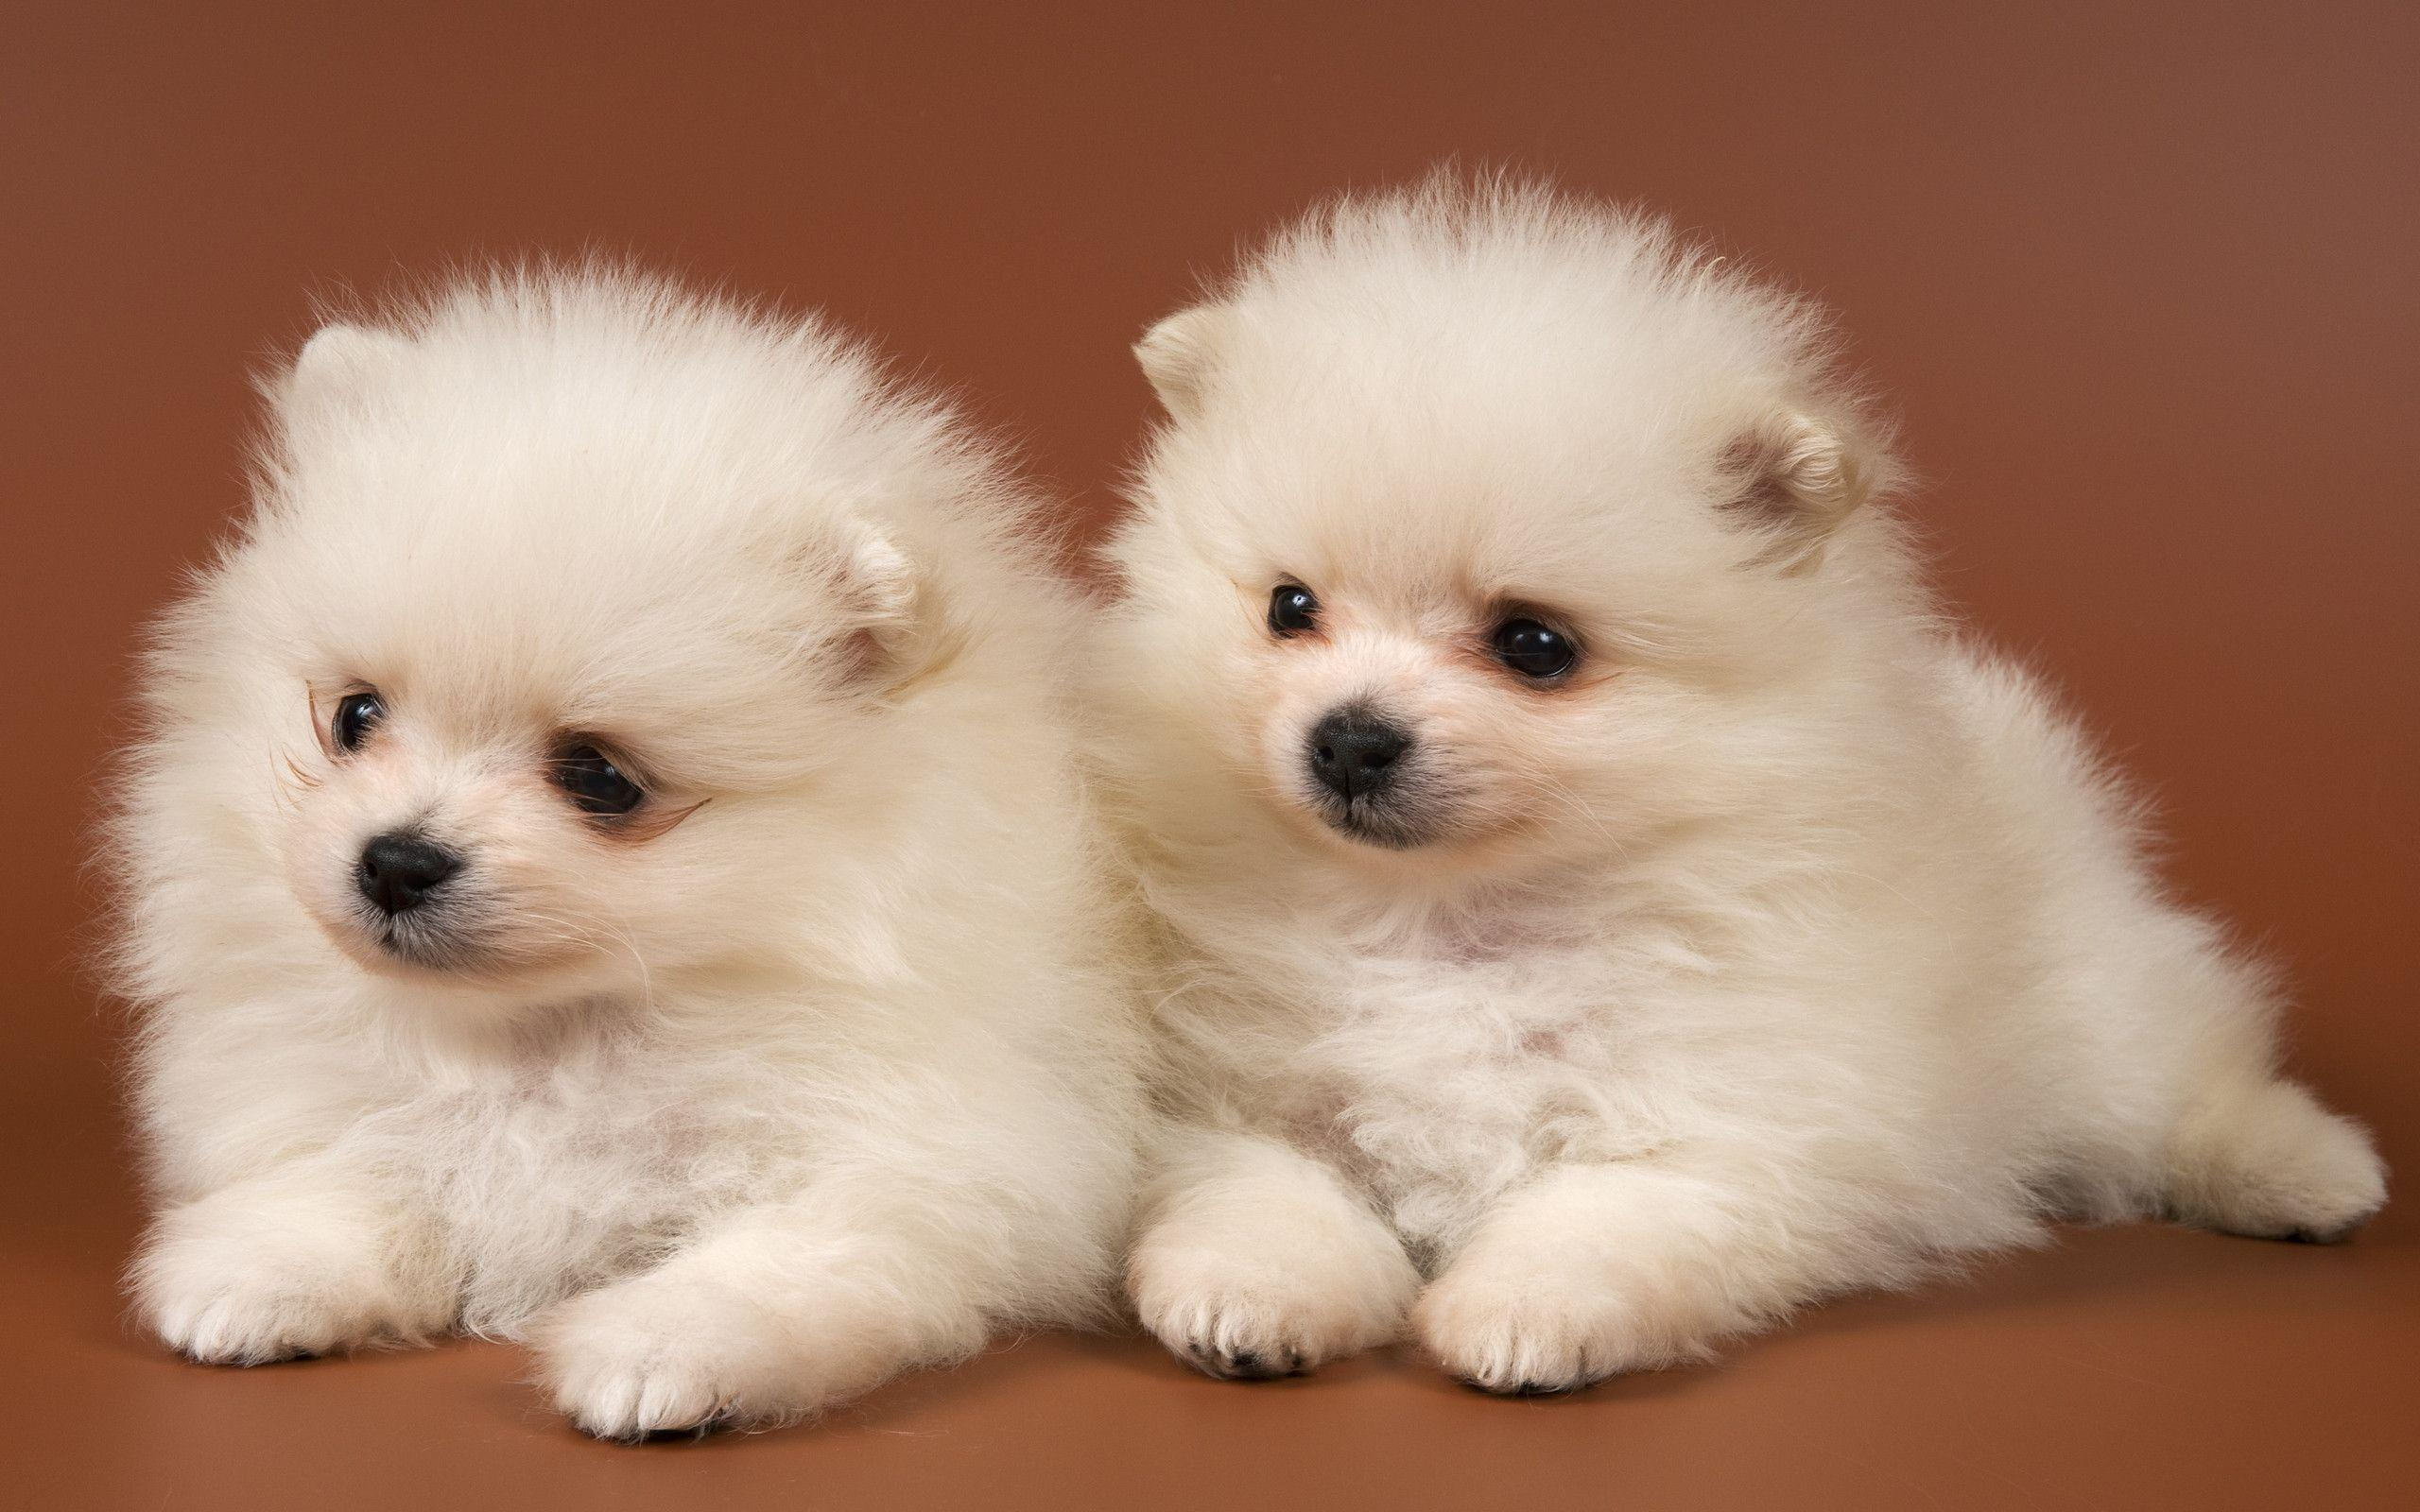 Baby Dog Wallpapers - Wallpaper Cave